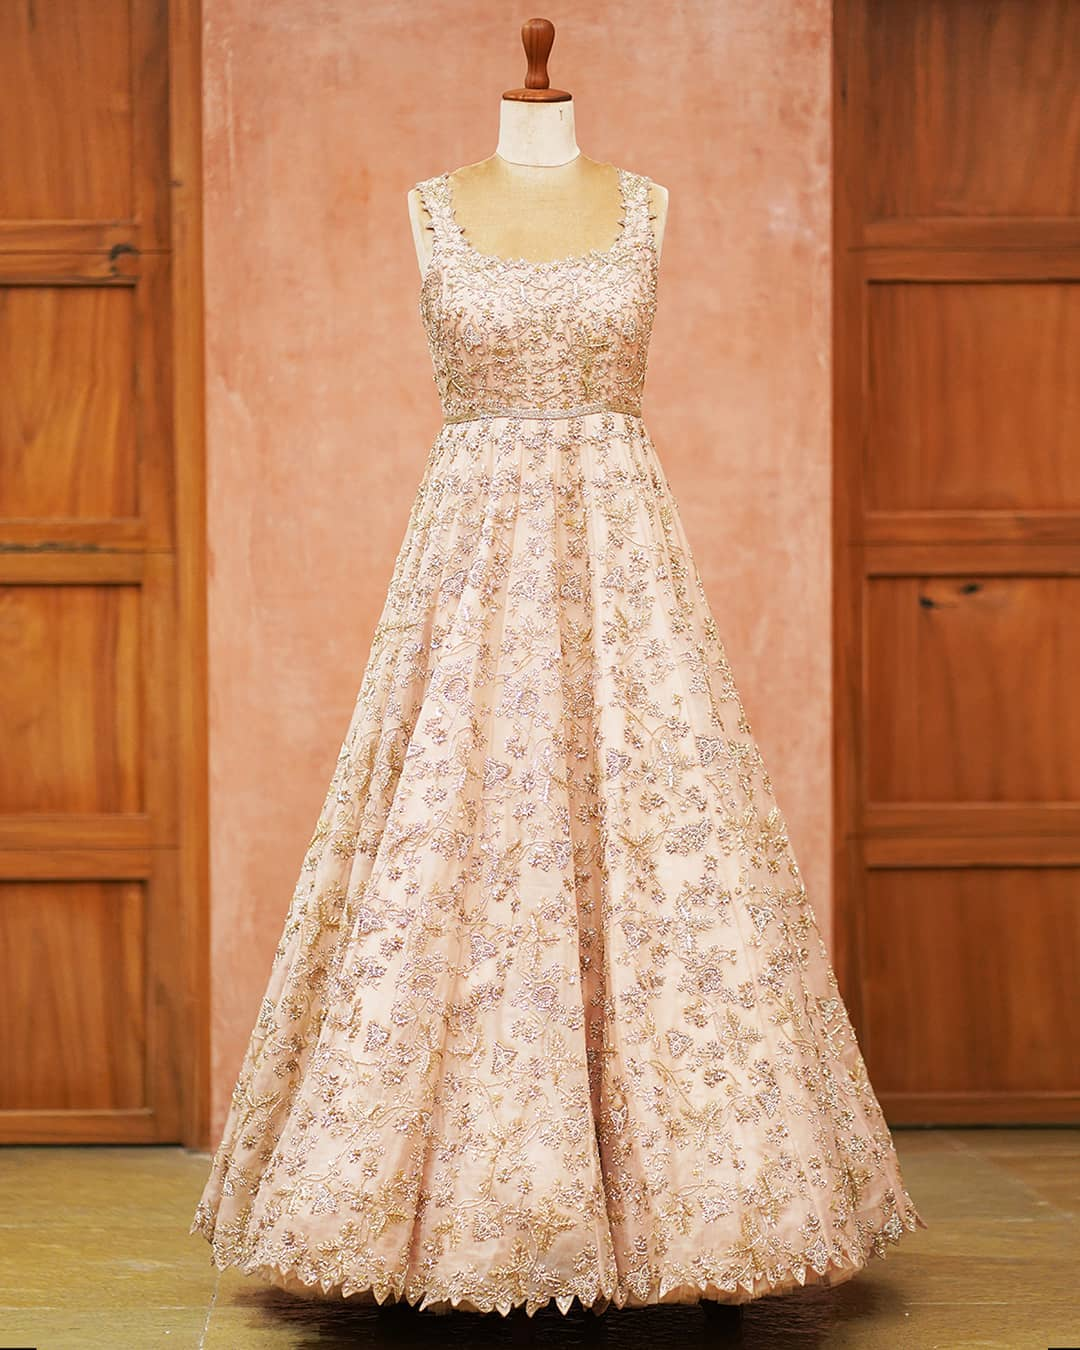 Stunning peach color floor length wedding or reception gown with rich classy hand embroidery work.  2021-04-22